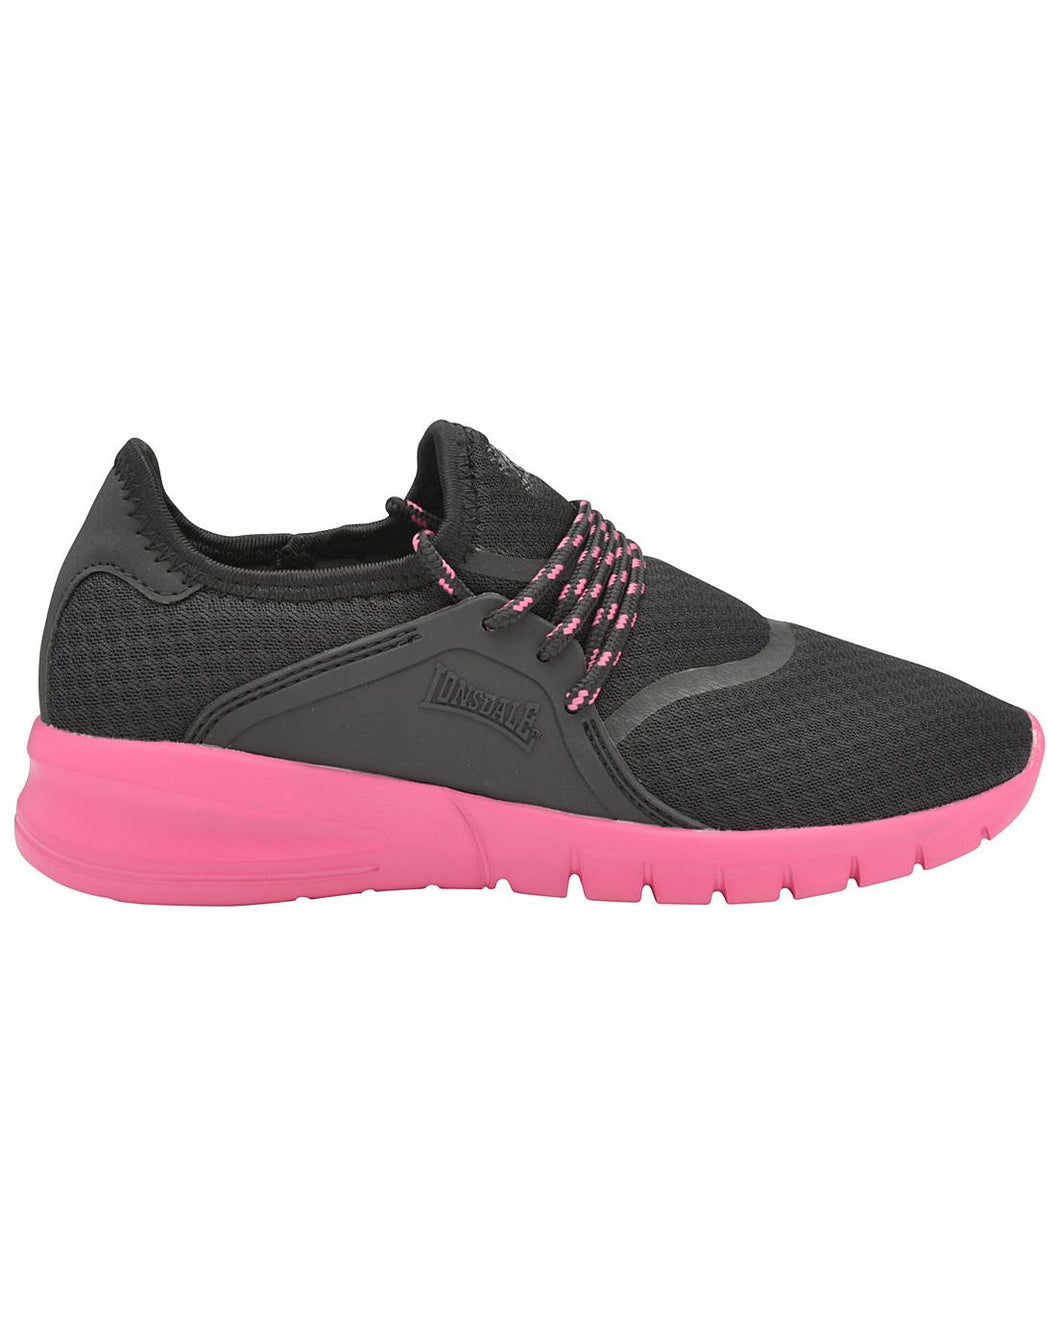 Lonsdale Sirius Trainers Black and Pink